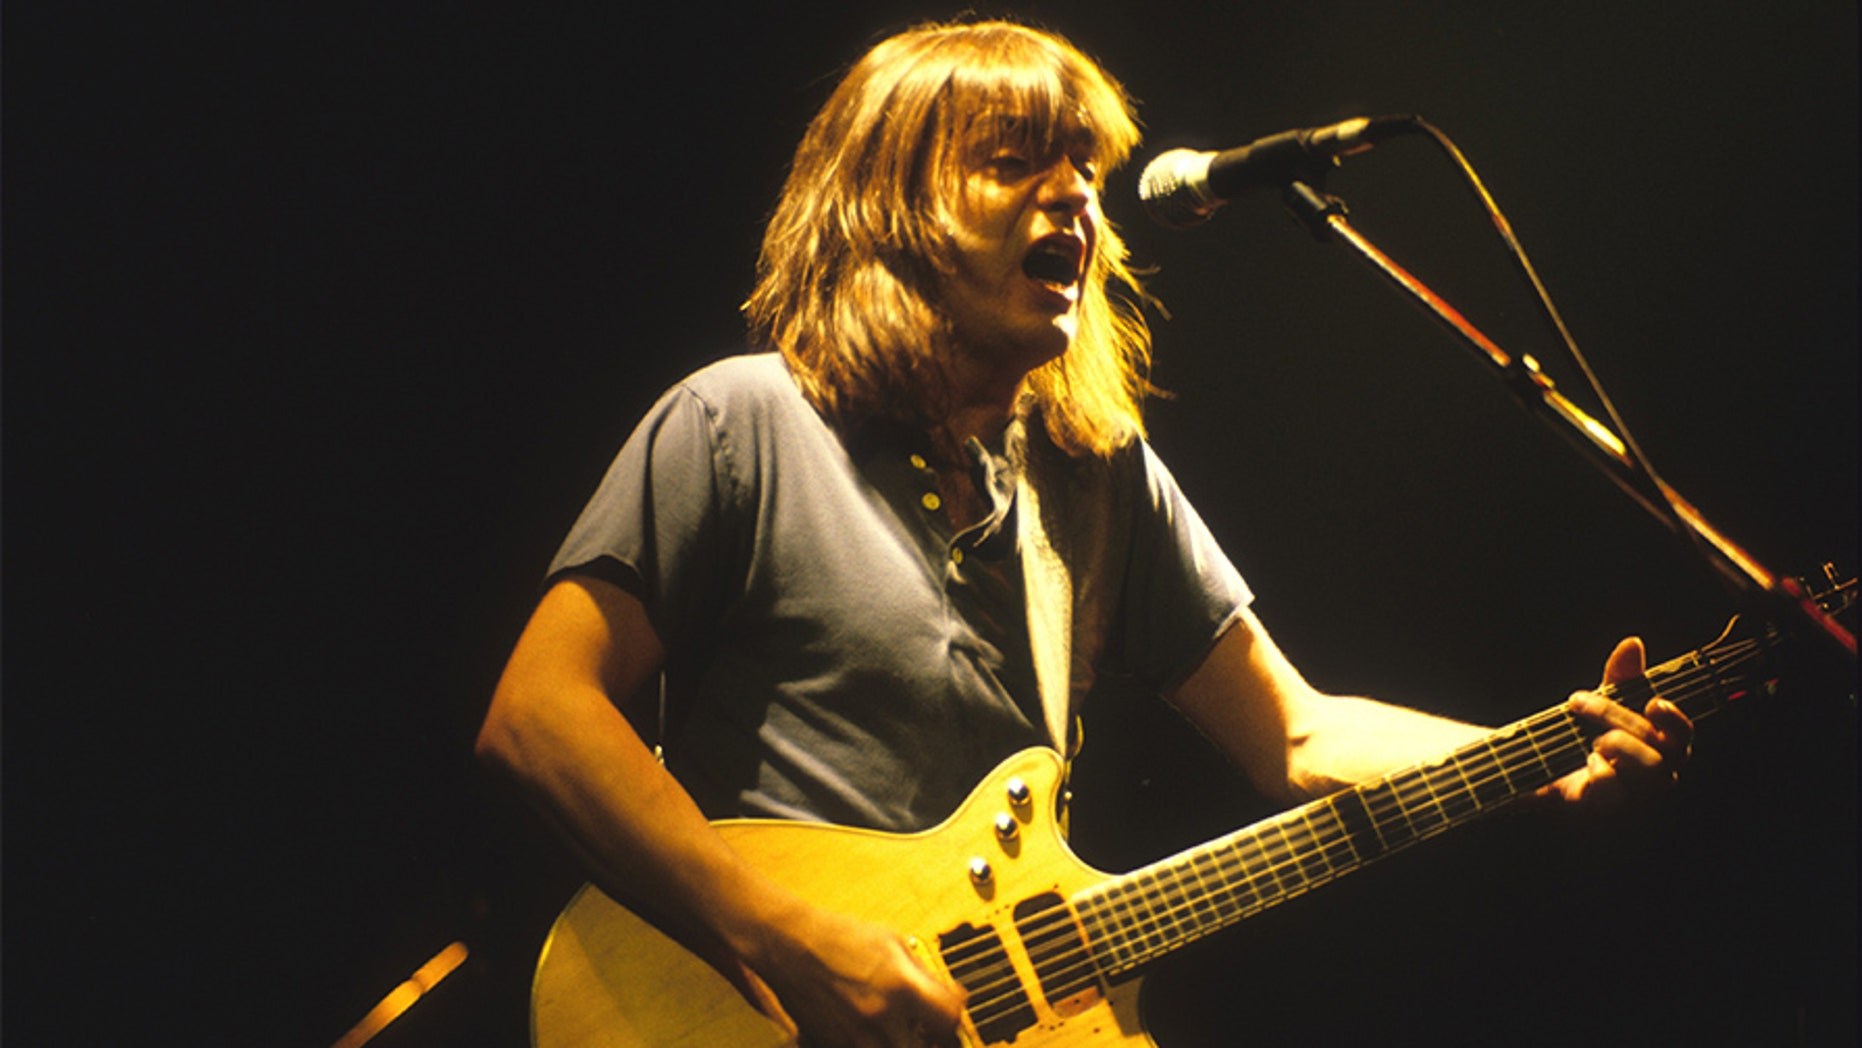 Malcolm Young of the rock band AC/DC died after a long battle with dementia.